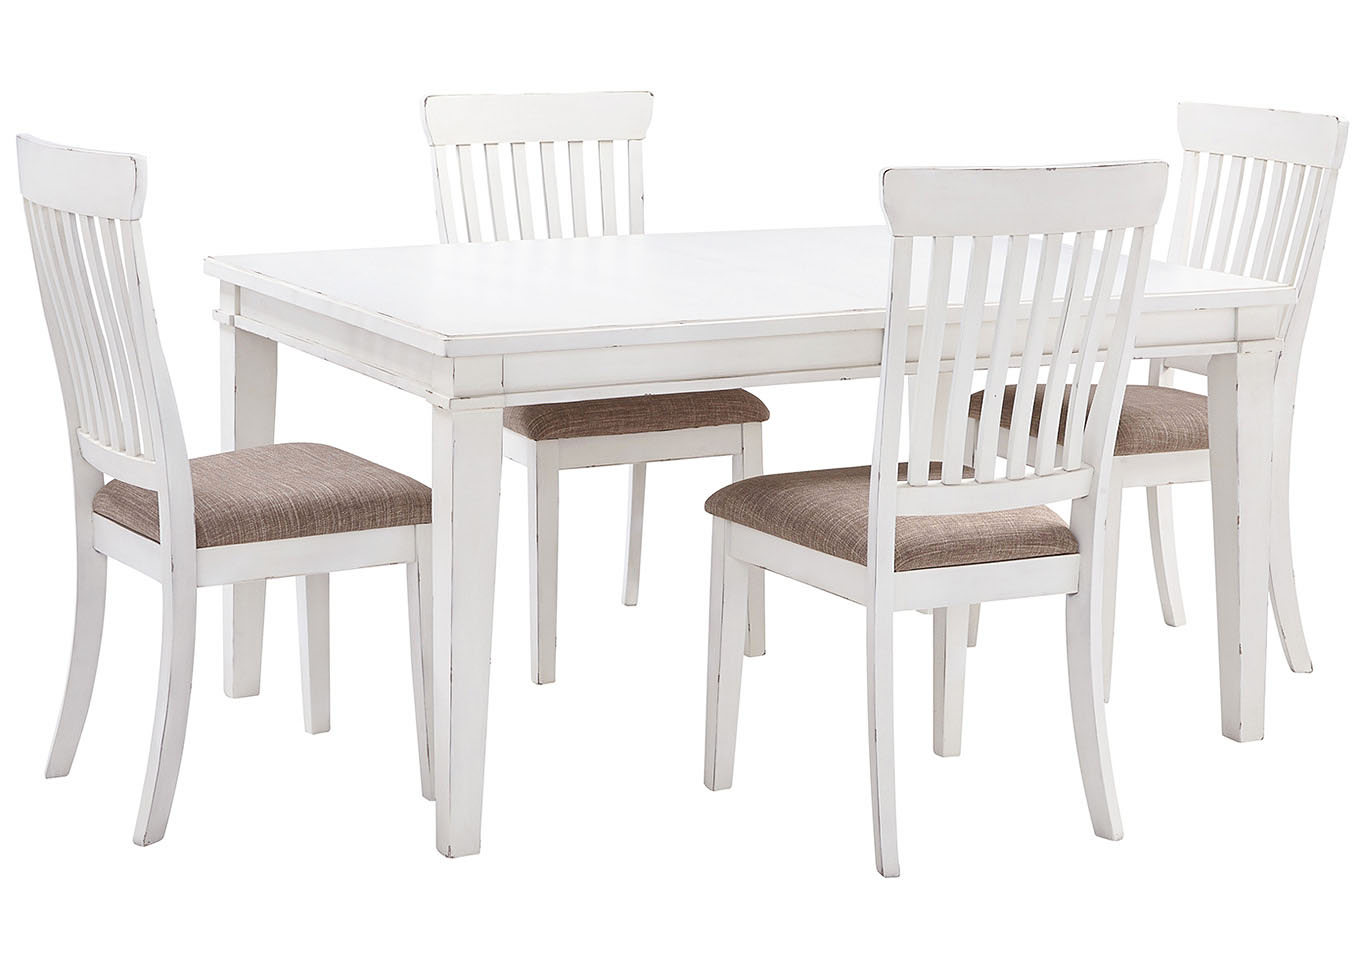 Alliance Furniture Usa Danbeck White Dining Table Set W within sizing 1366 X 968